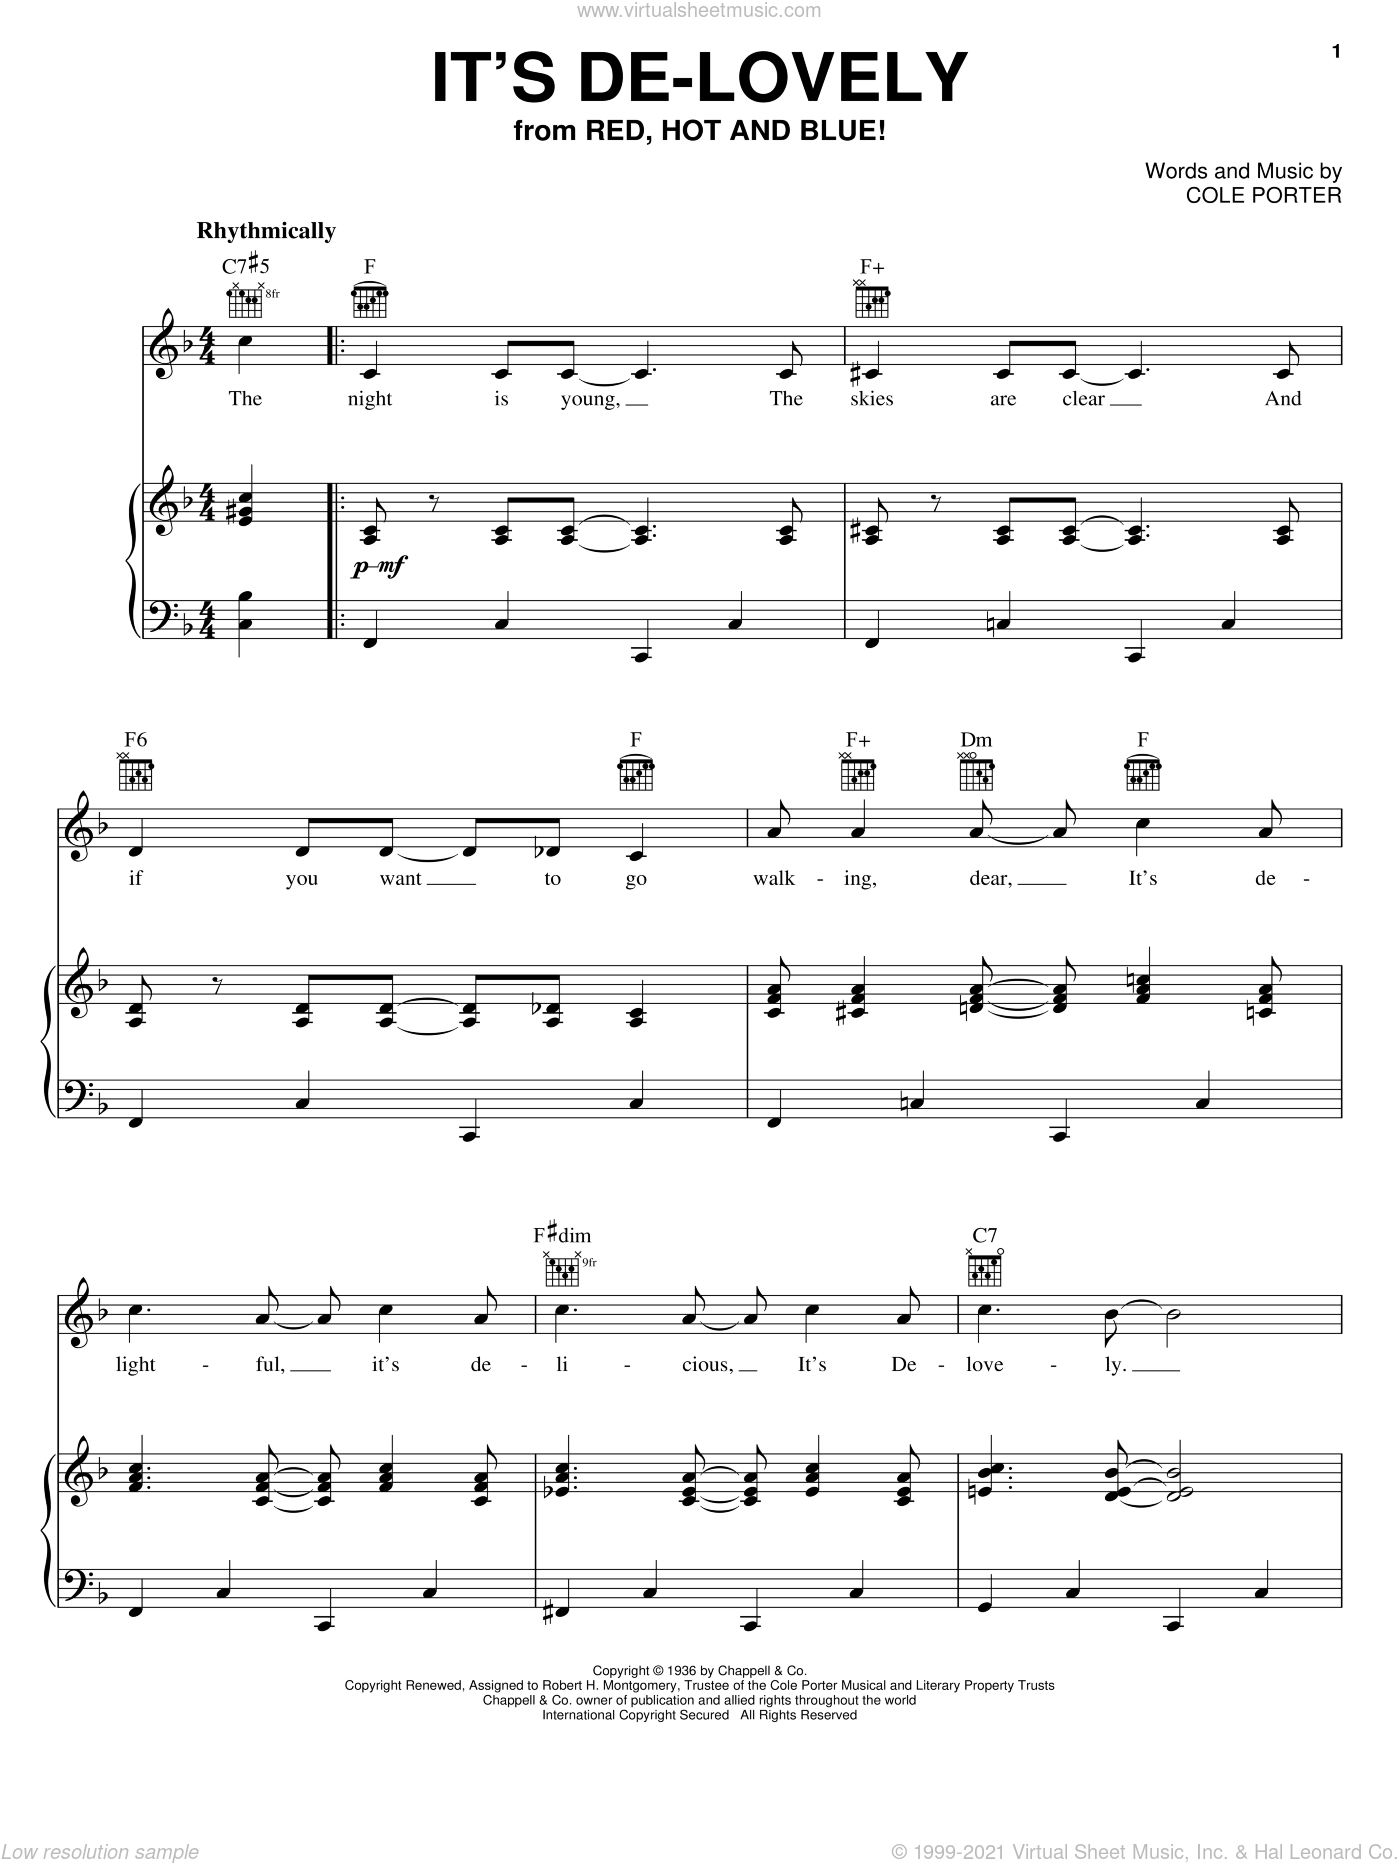 It's De-Lovely sheet music for voice, piano or guitar by Cole Porter, intermediate skill level